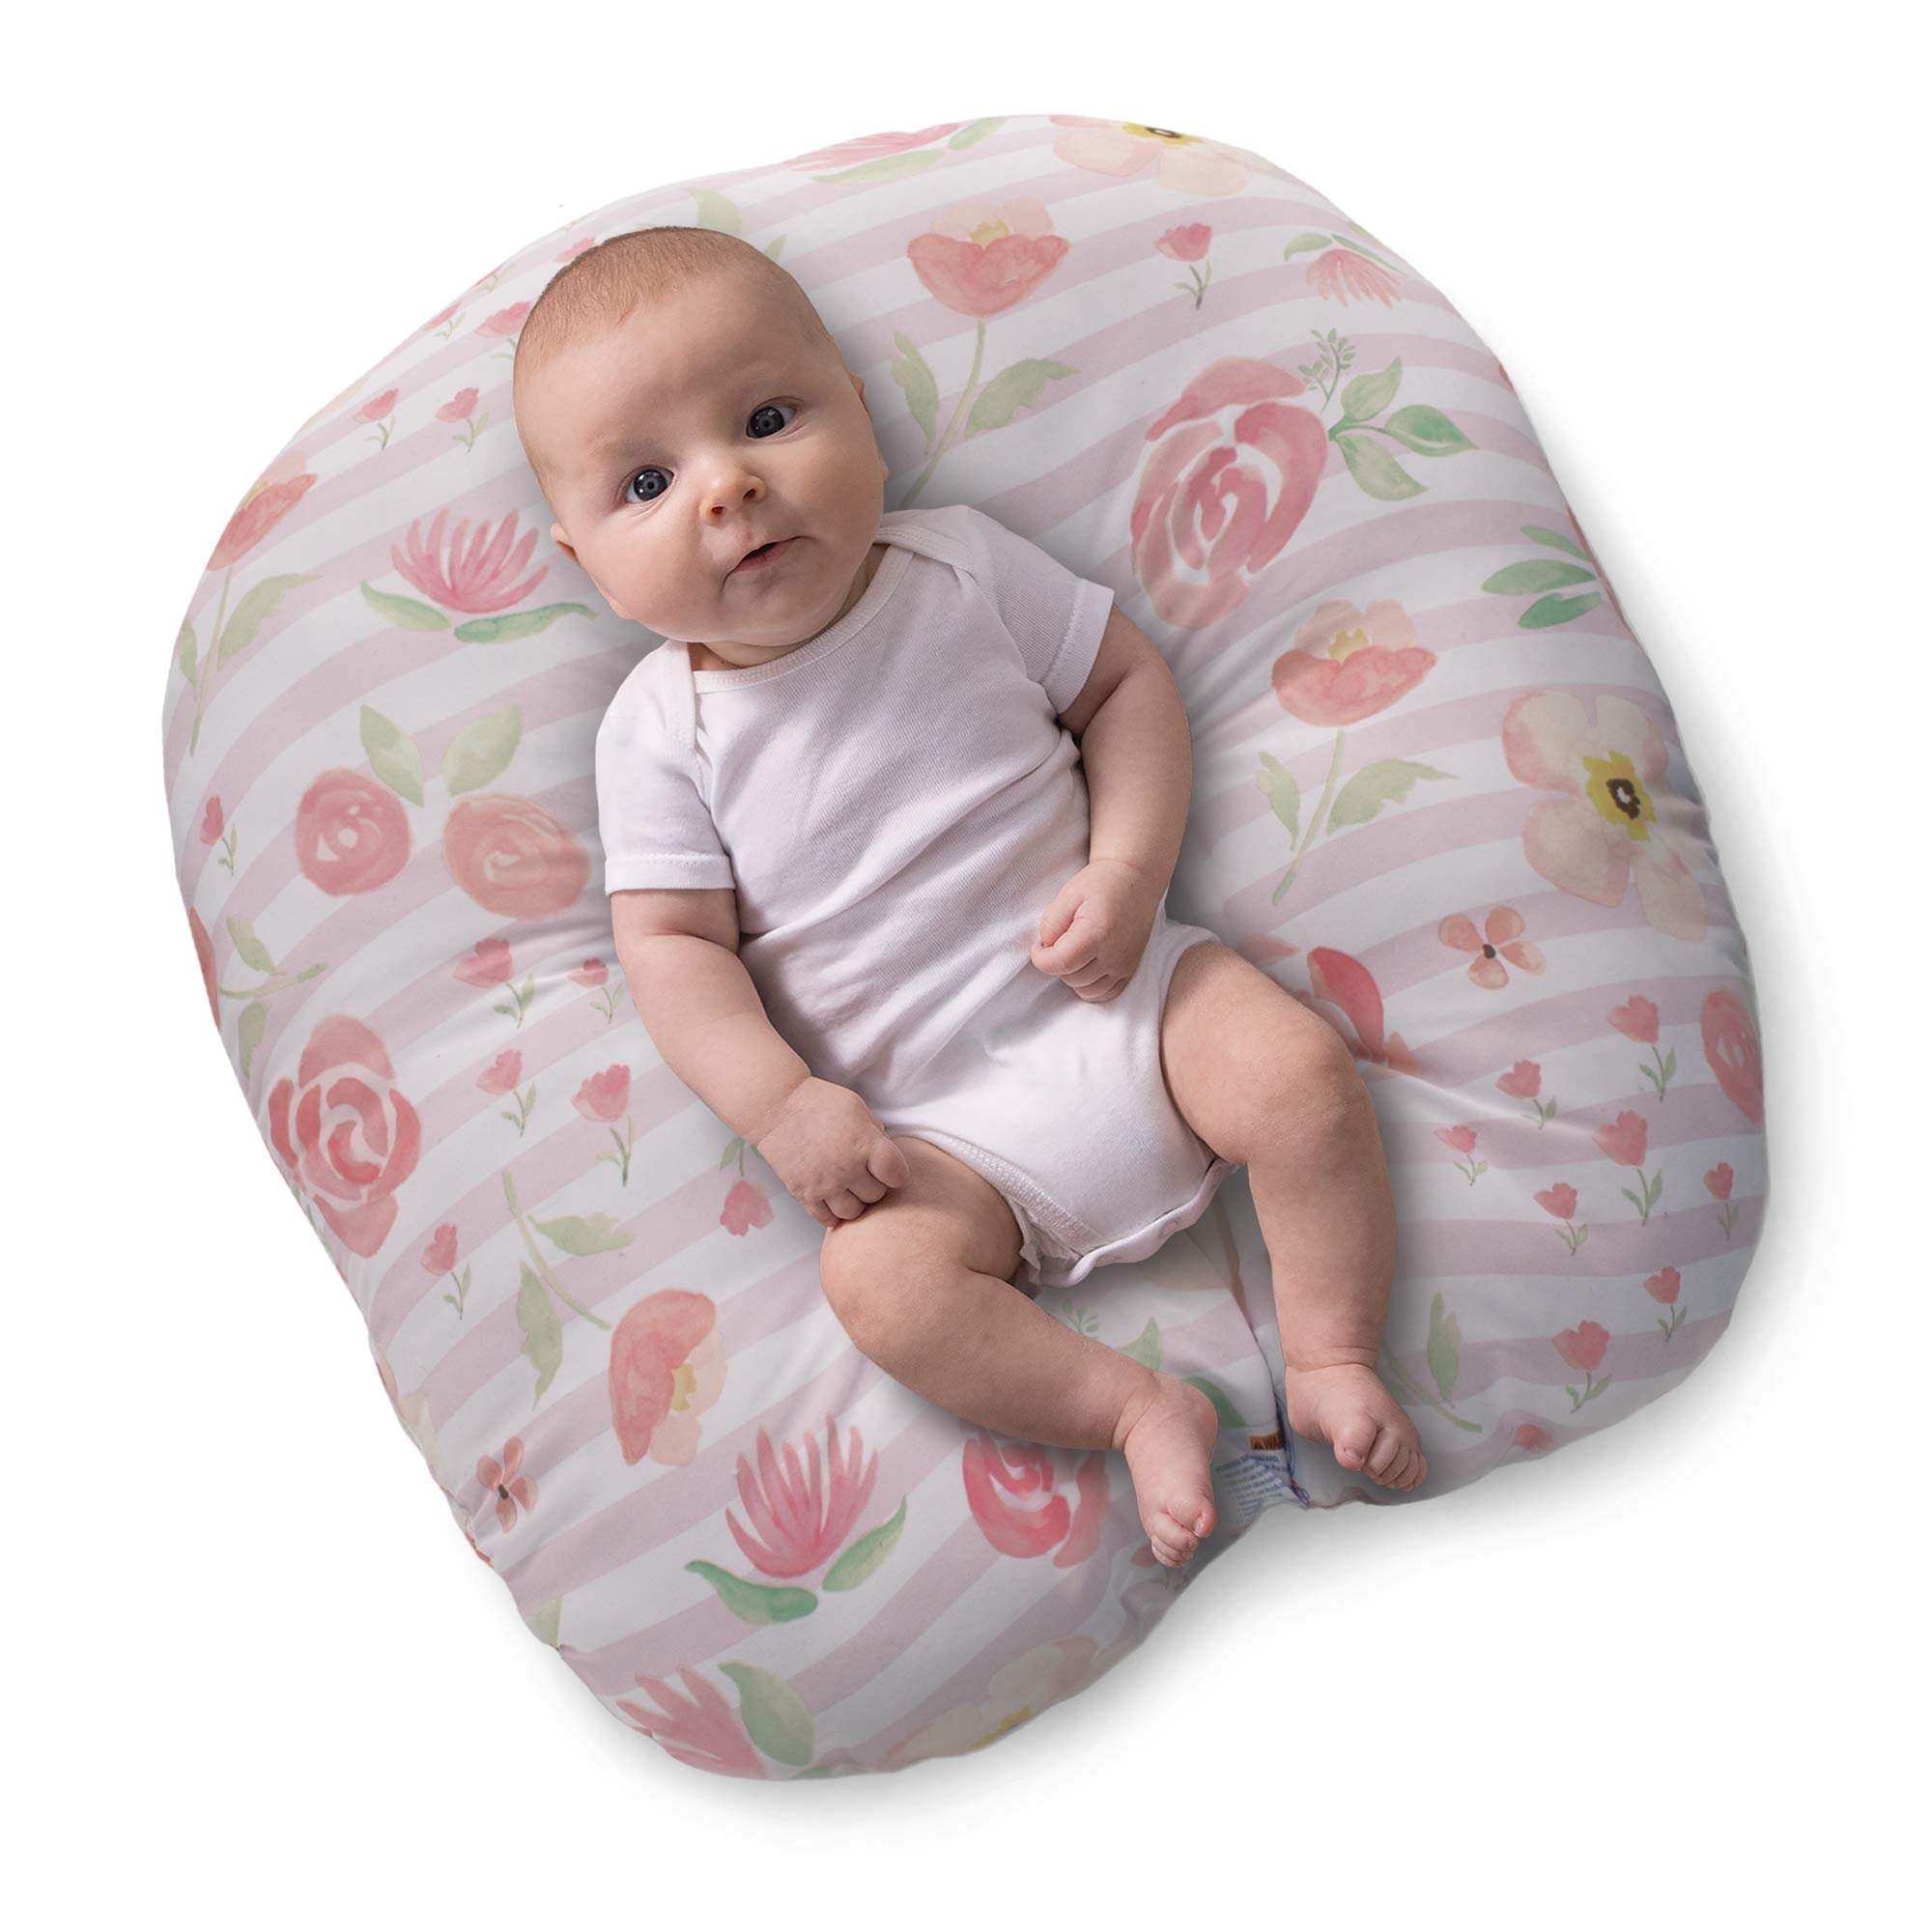 Amazon.com : Newborn Lounger Cover Removable Cover 100% Soft Cotton Cute Flower : Baby